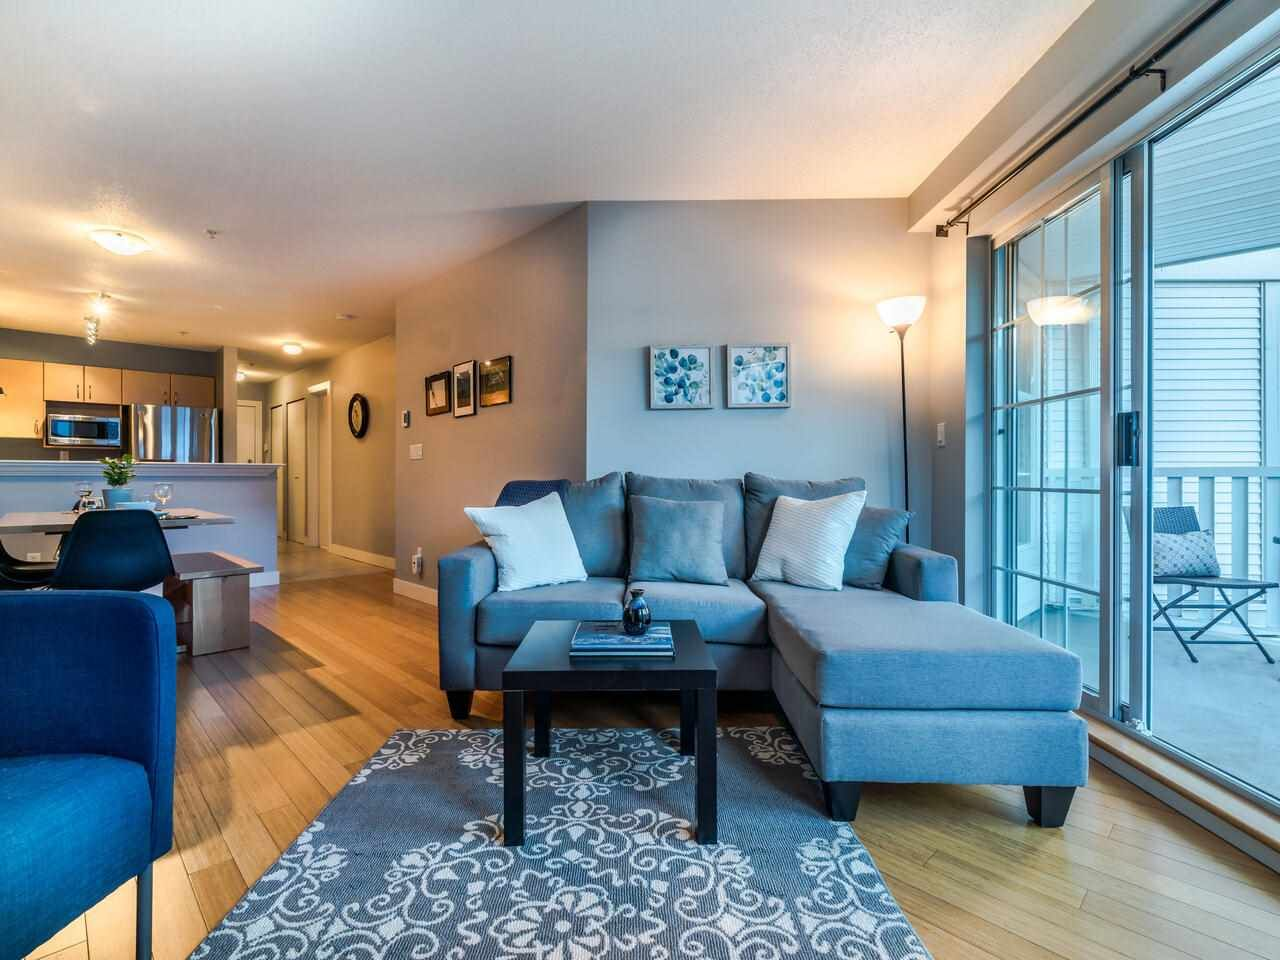 """Main Photo: 204 137 E 1ST Street in North Vancouver: Lower Lonsdale Condo for sale in """"The Coronado"""" : MLS®# R2530458"""